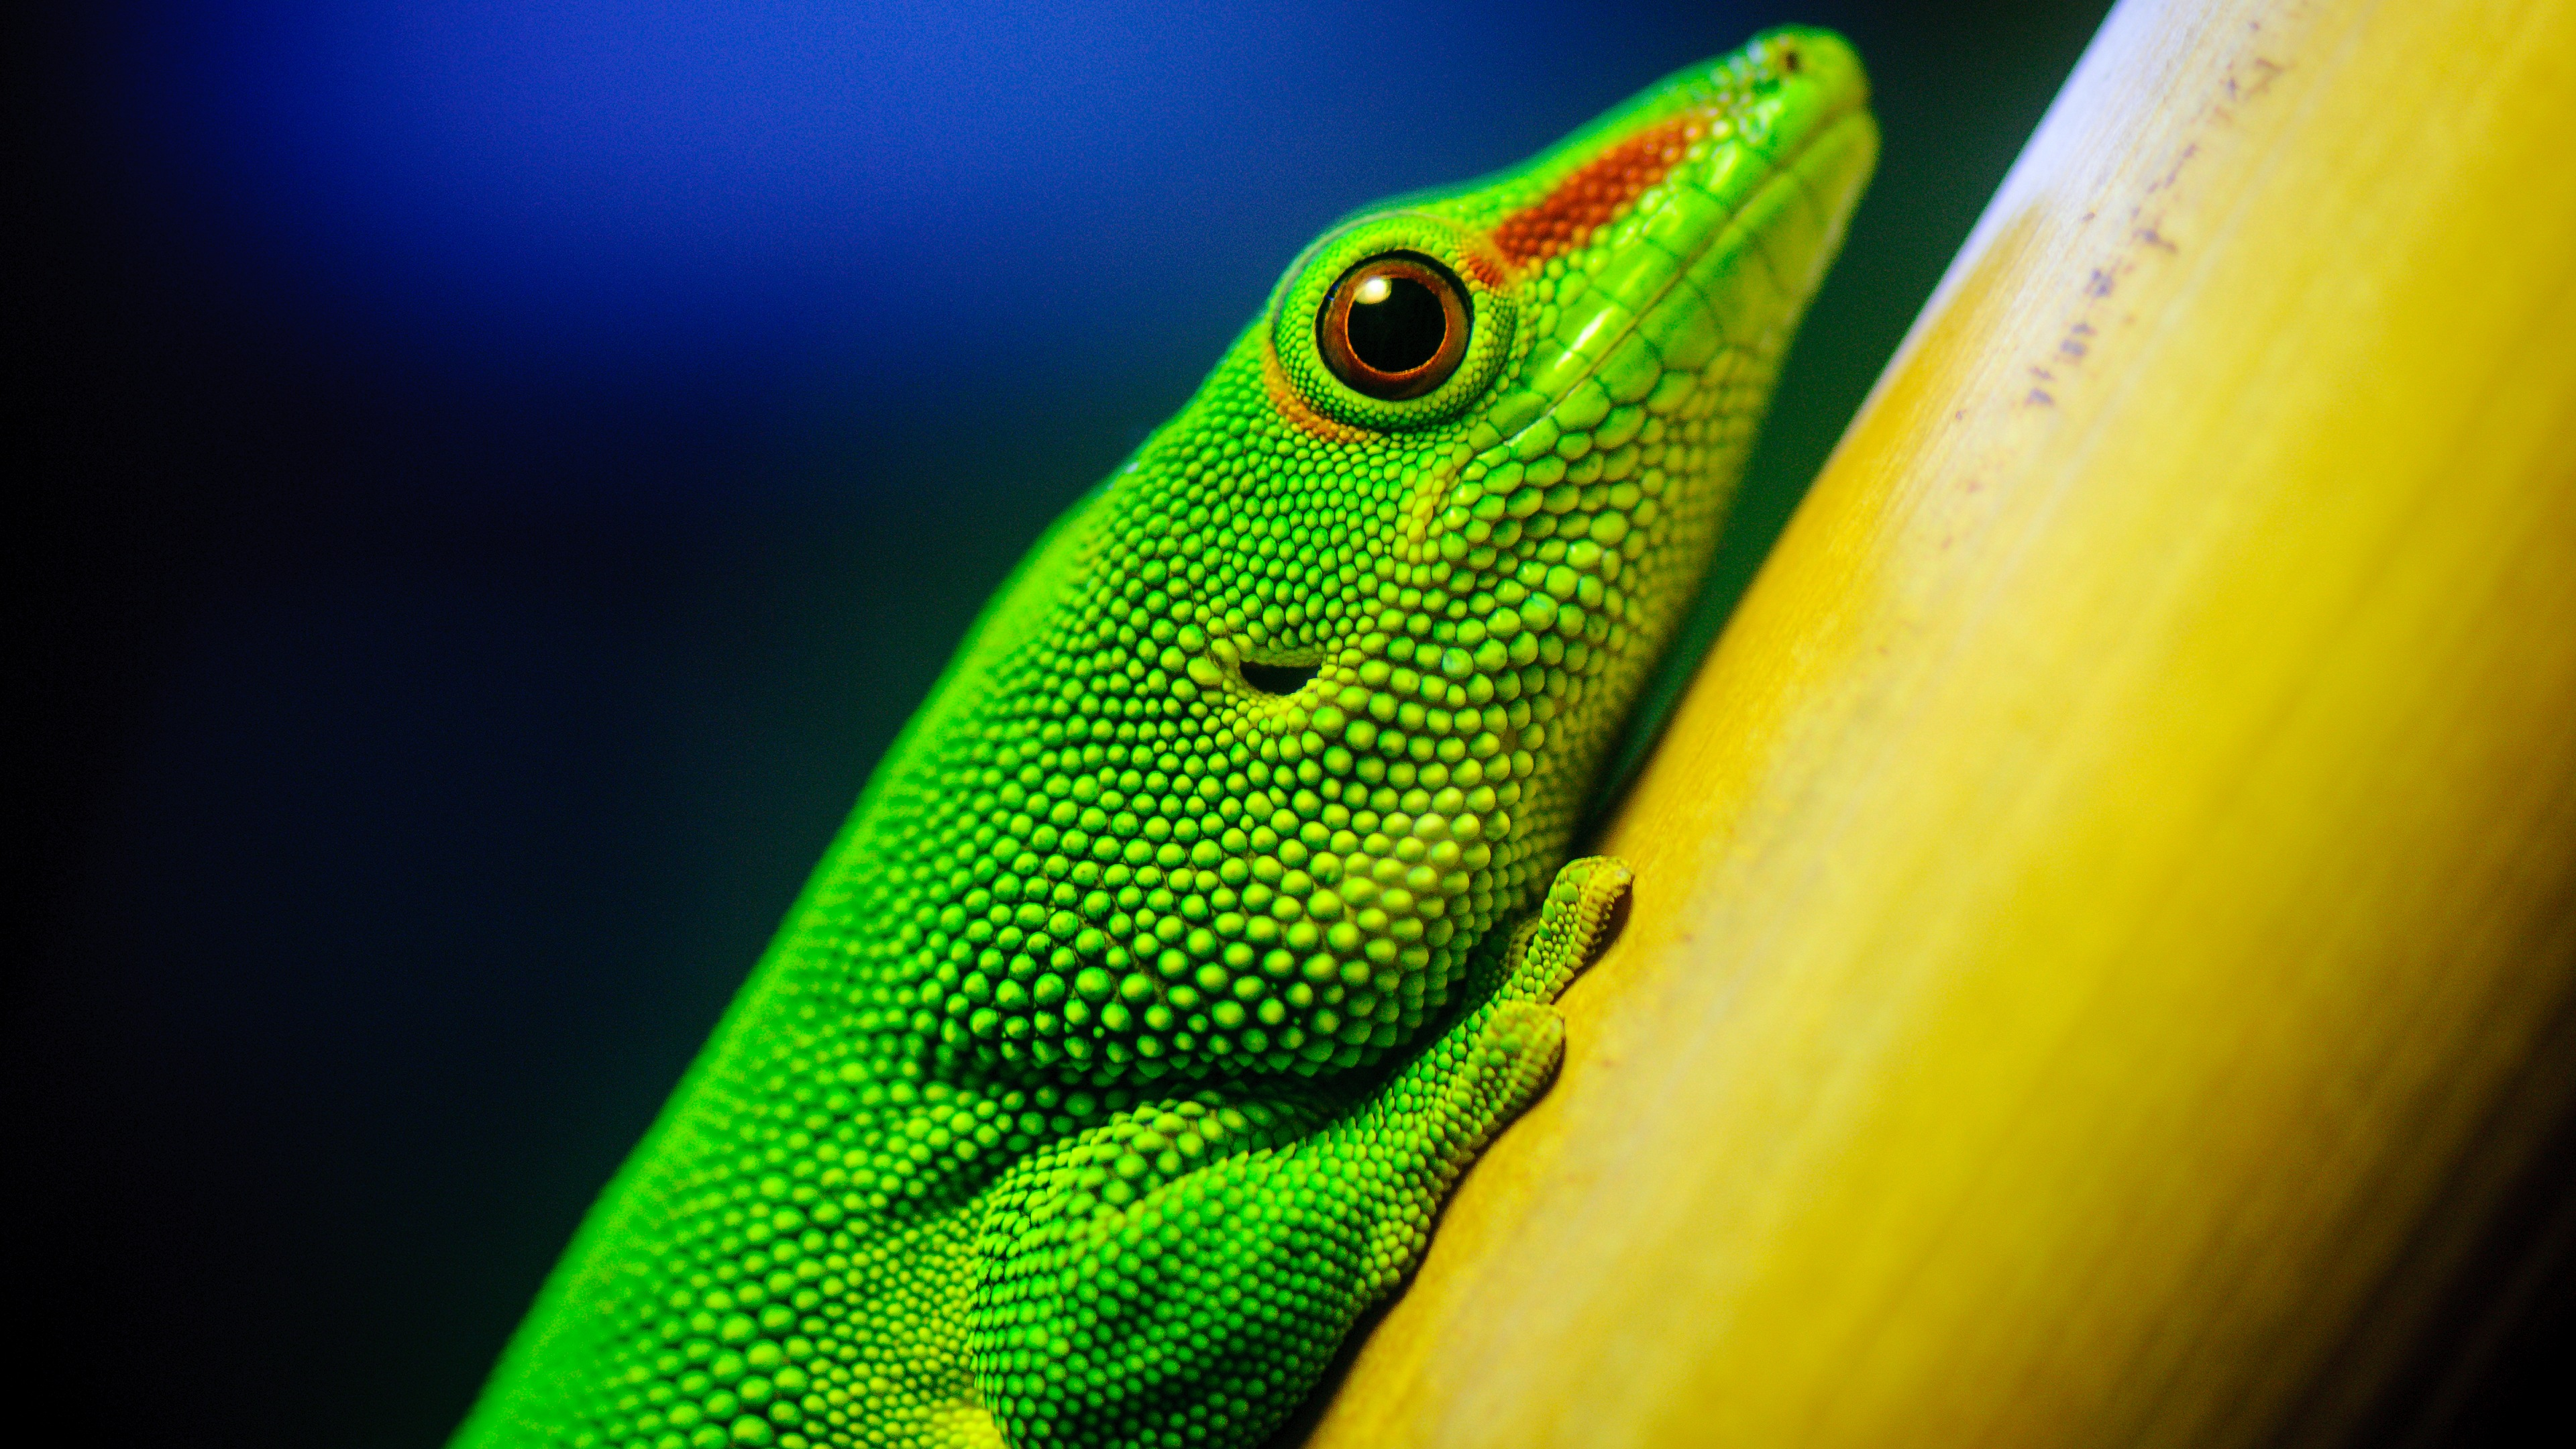 Little Green Lizard Ultra HD 4K Desktop Wallpaper